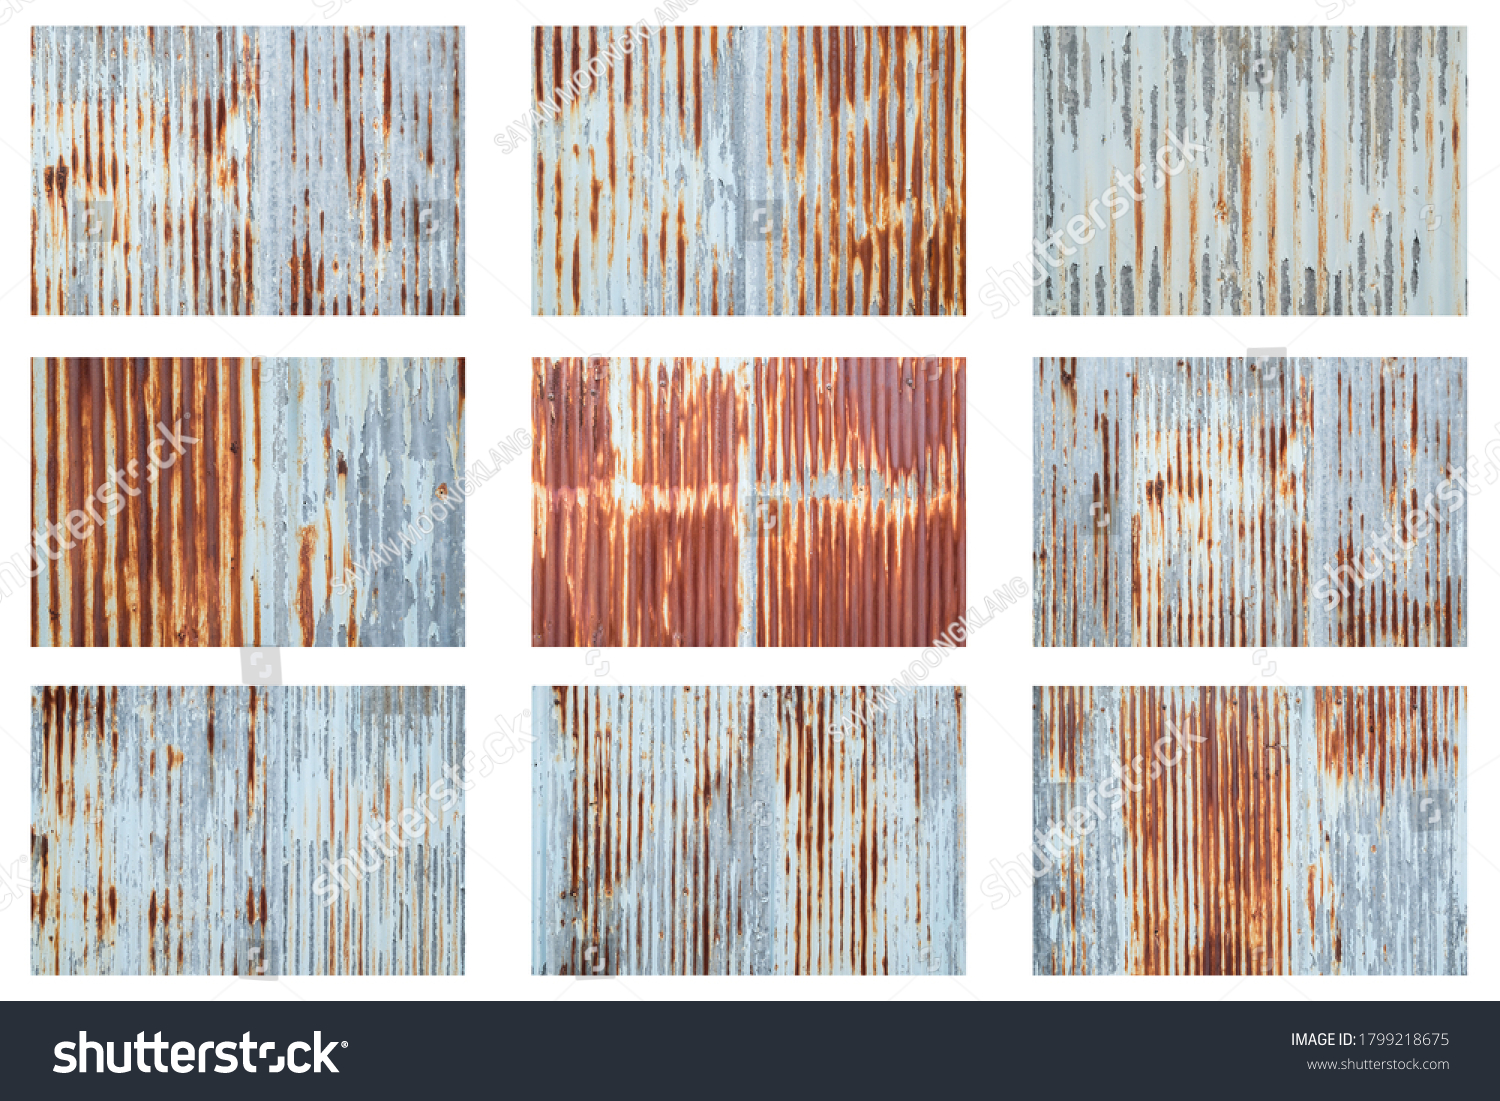 Old metal sheet roof texture isolated on white background. Rusty metal sheet texture set. #1799218675